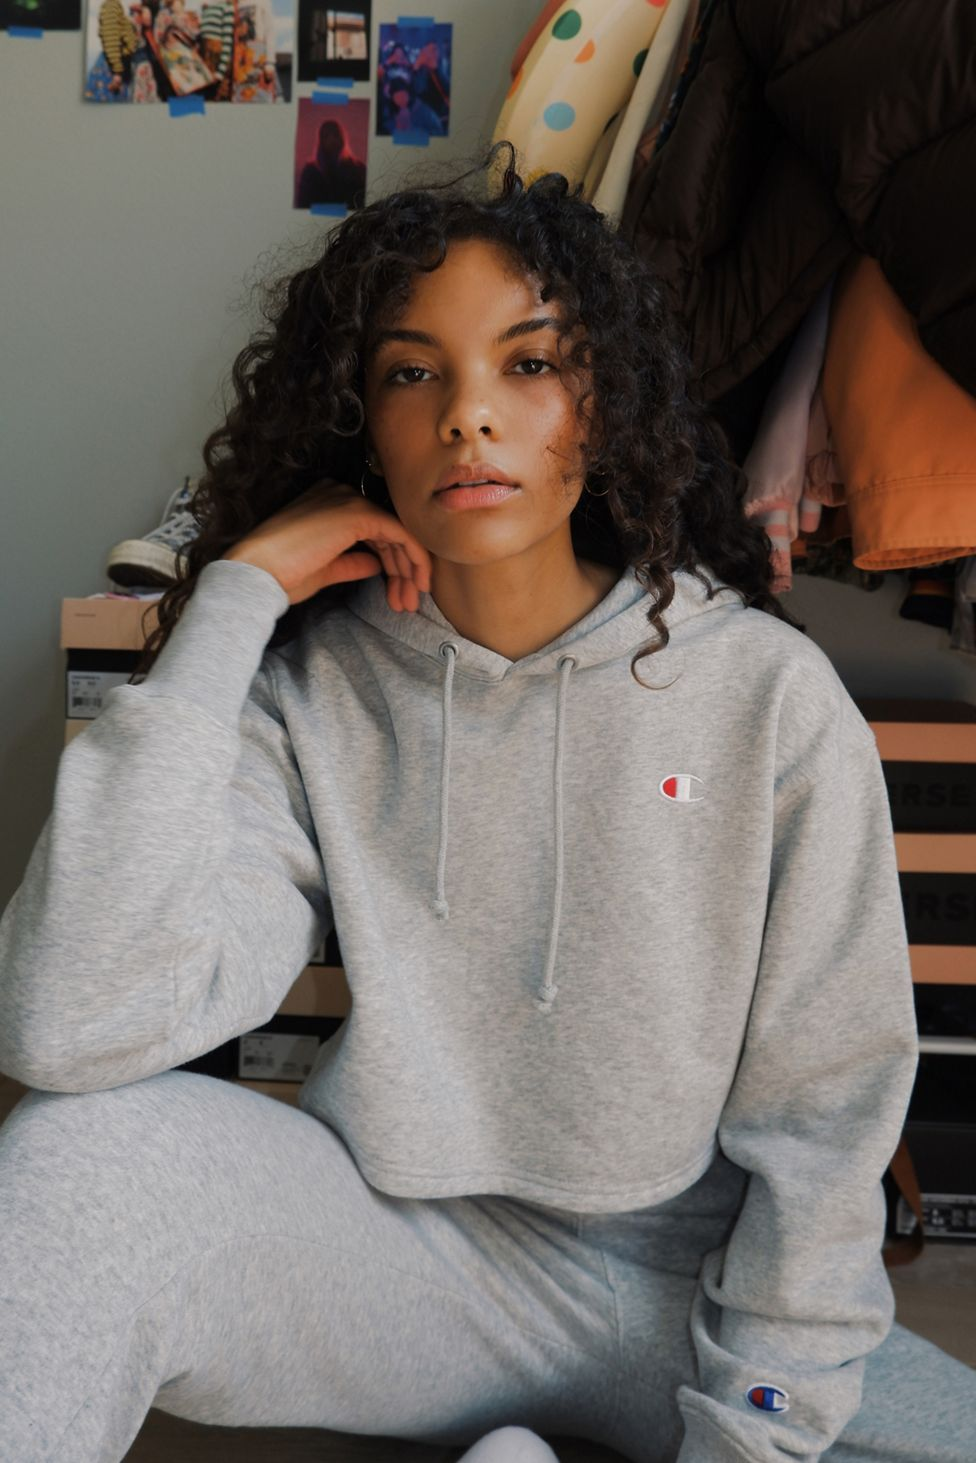 Champion Uo Exclusive Cropped Hoodie Sweatshirt Urban Outfitters Crop Sweatshirt Hoodie Cropped Hoodie Sweatshirts Hoodie [ 1463 x 976 Pixel ]